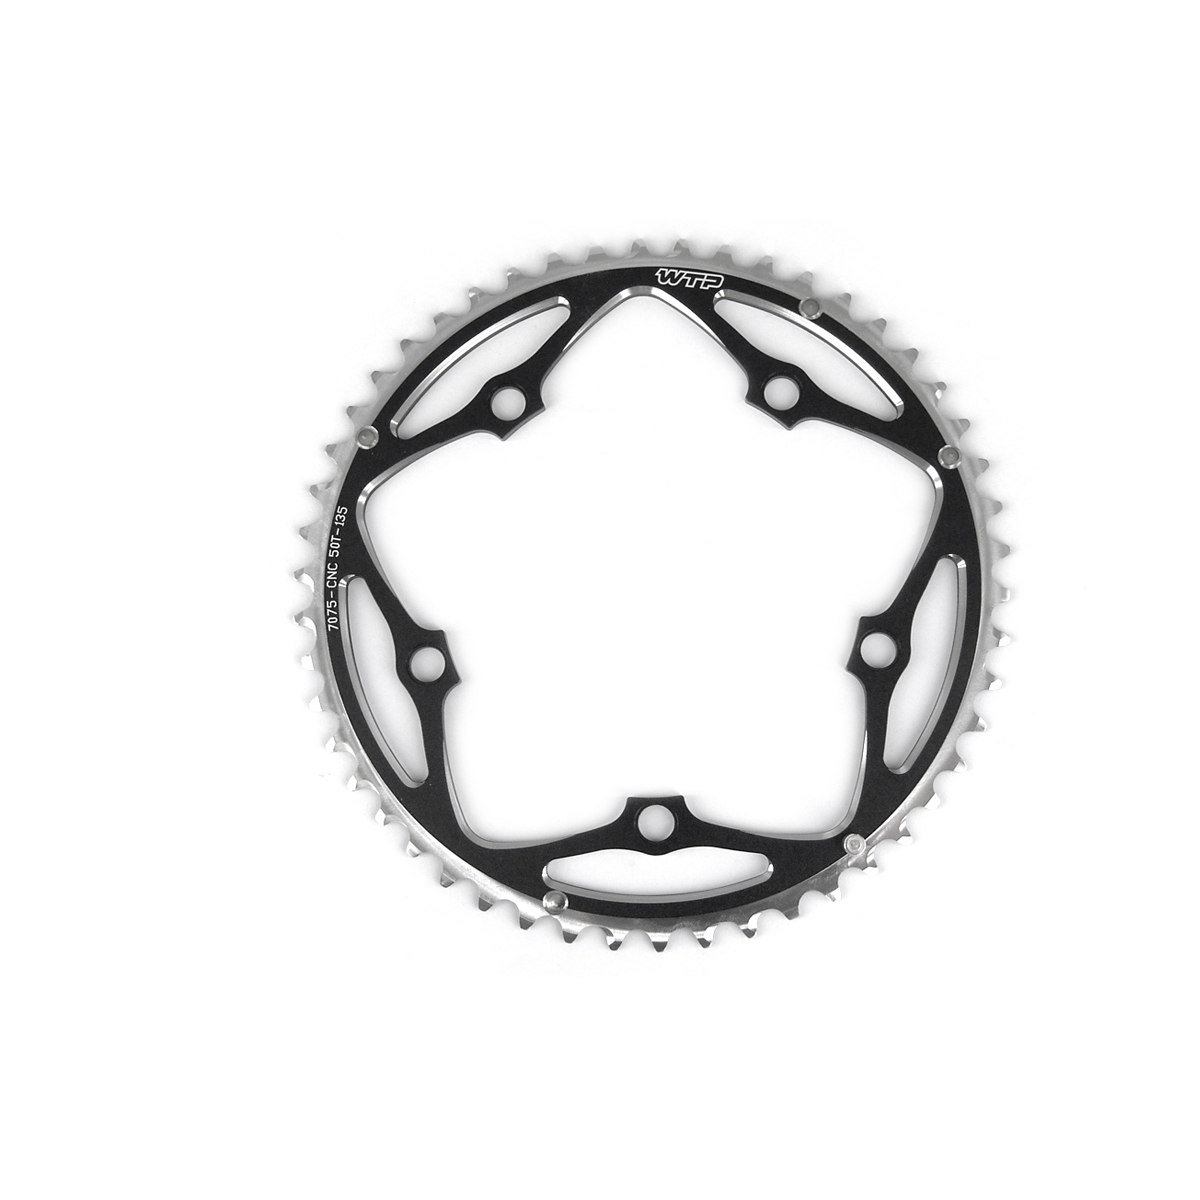 Plateau WTP 51 dents route Campagnolo 135 mm Noir